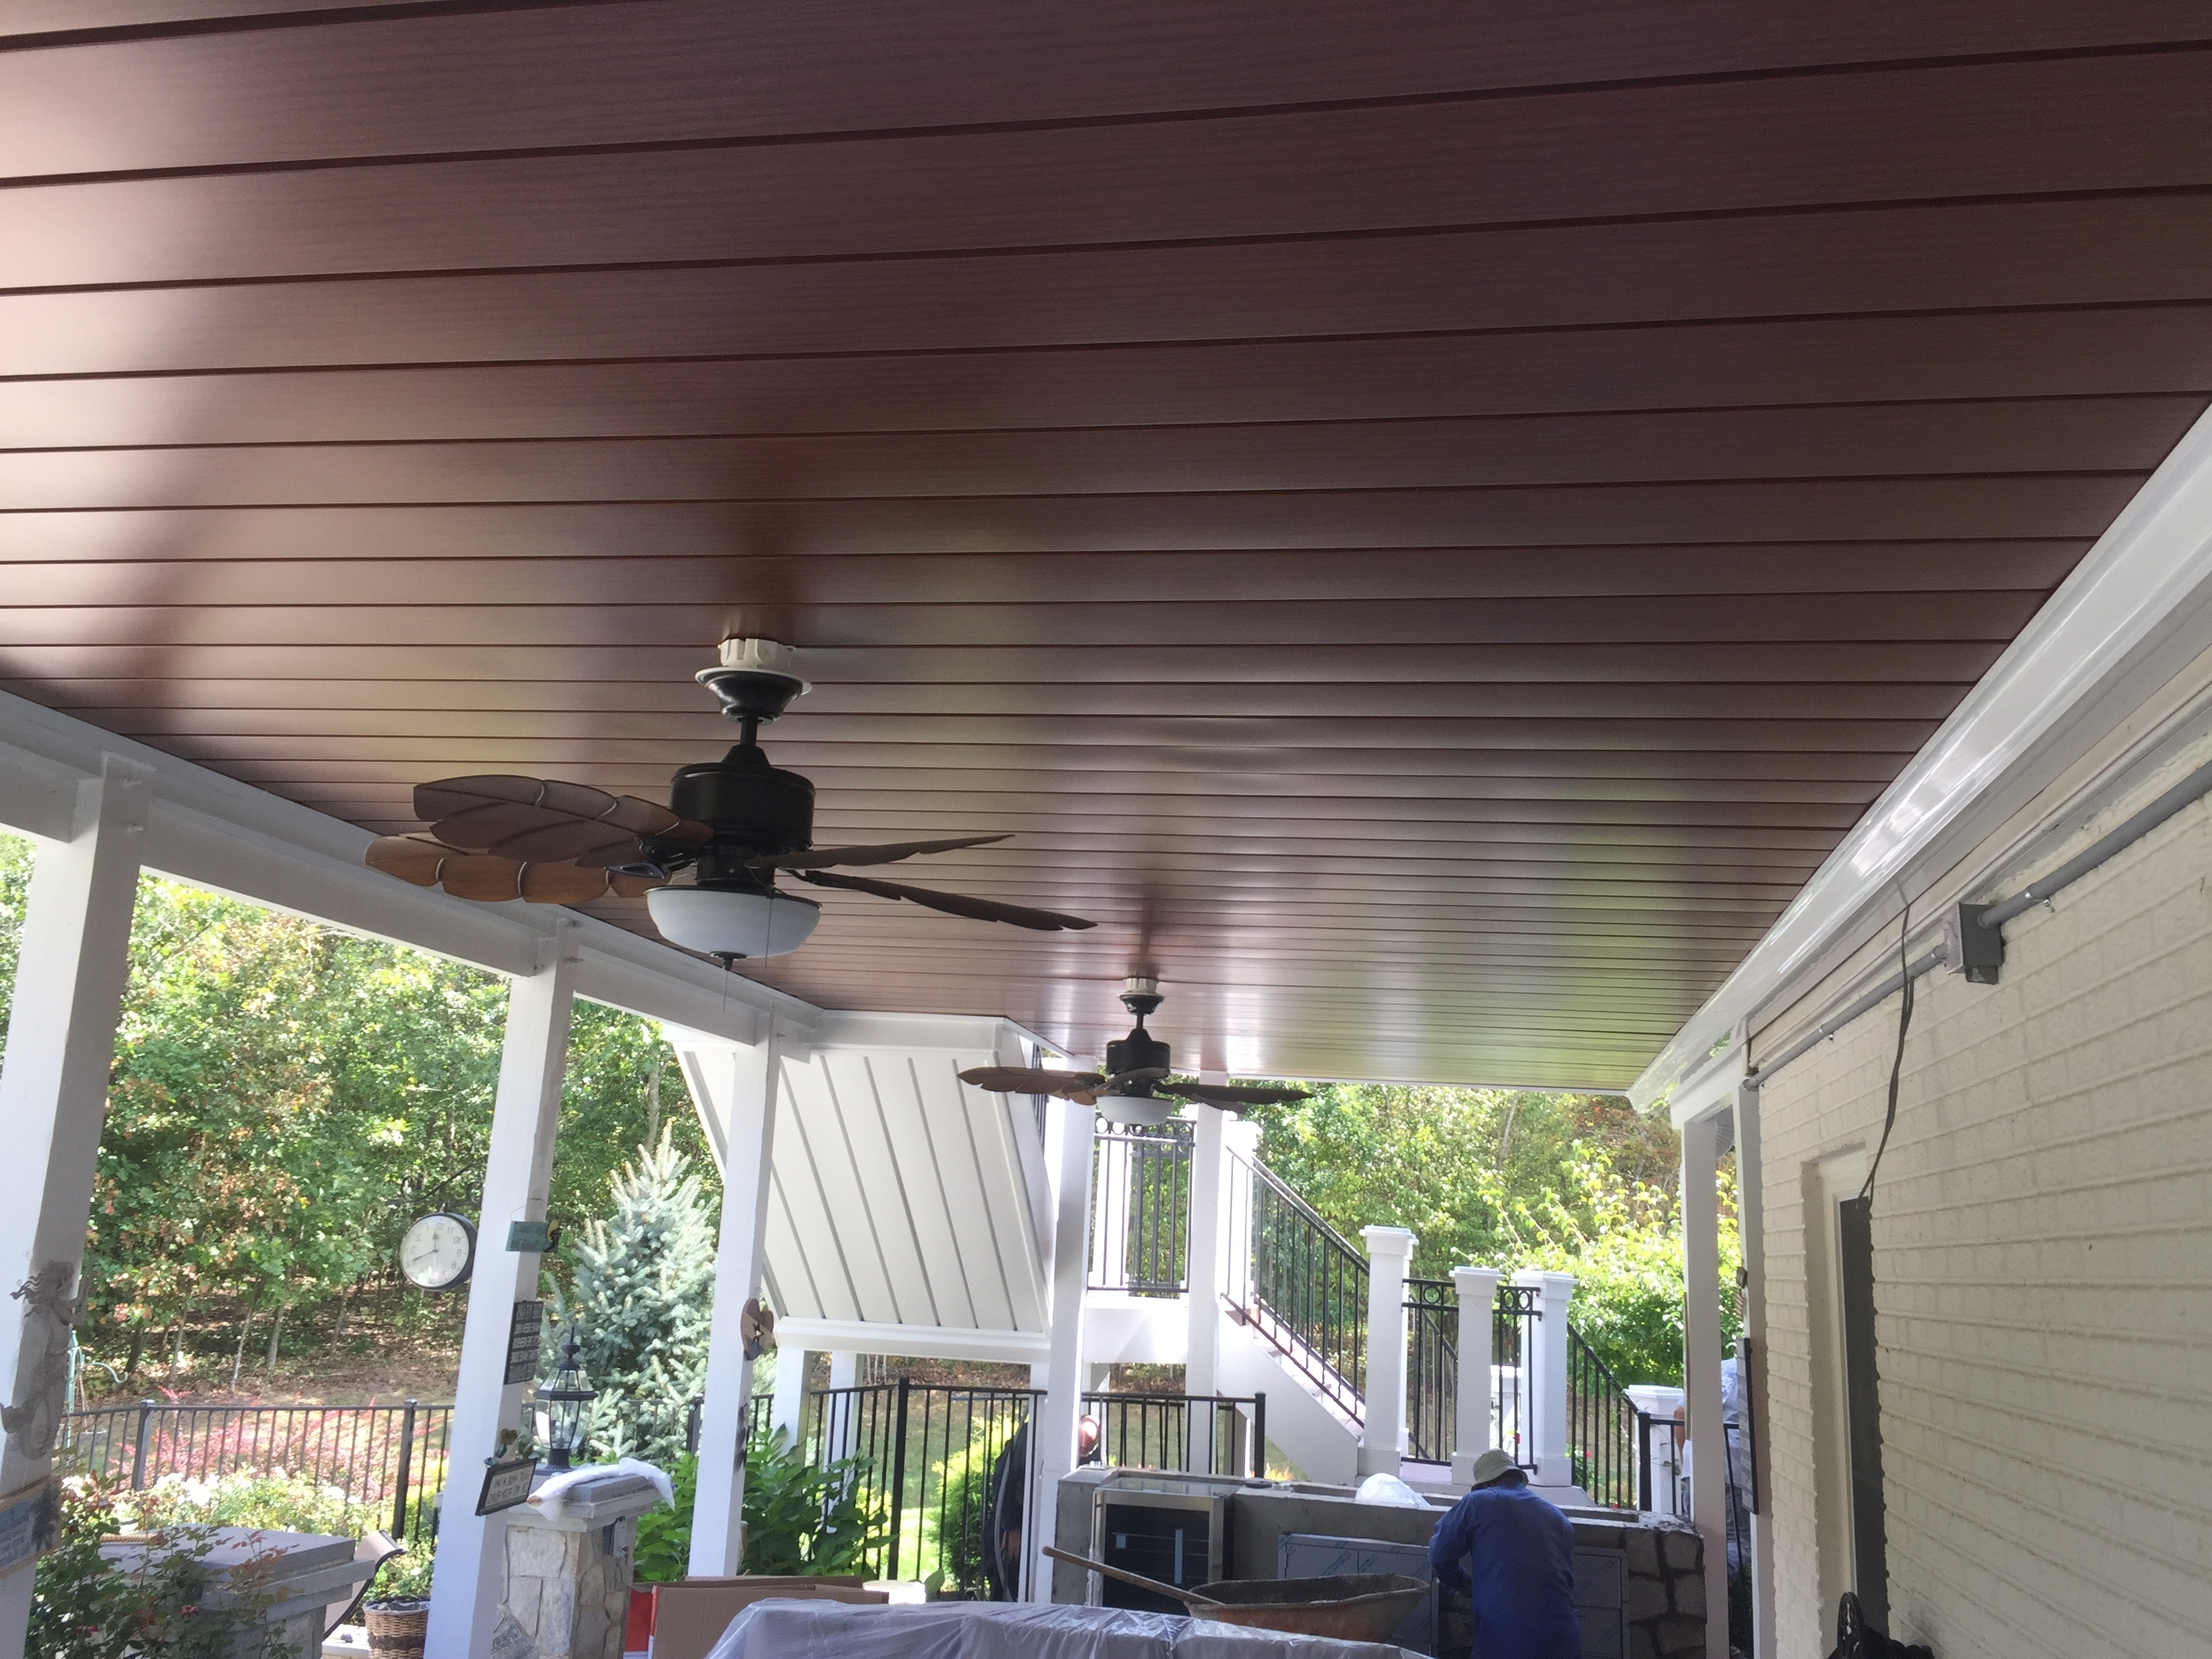 Install Outdoor Ceiling Fan Under Deck Www, Install Ceiling Fan Regarding Preferred Outdoor Ceiling Fans For Decks (View 3 of 20)